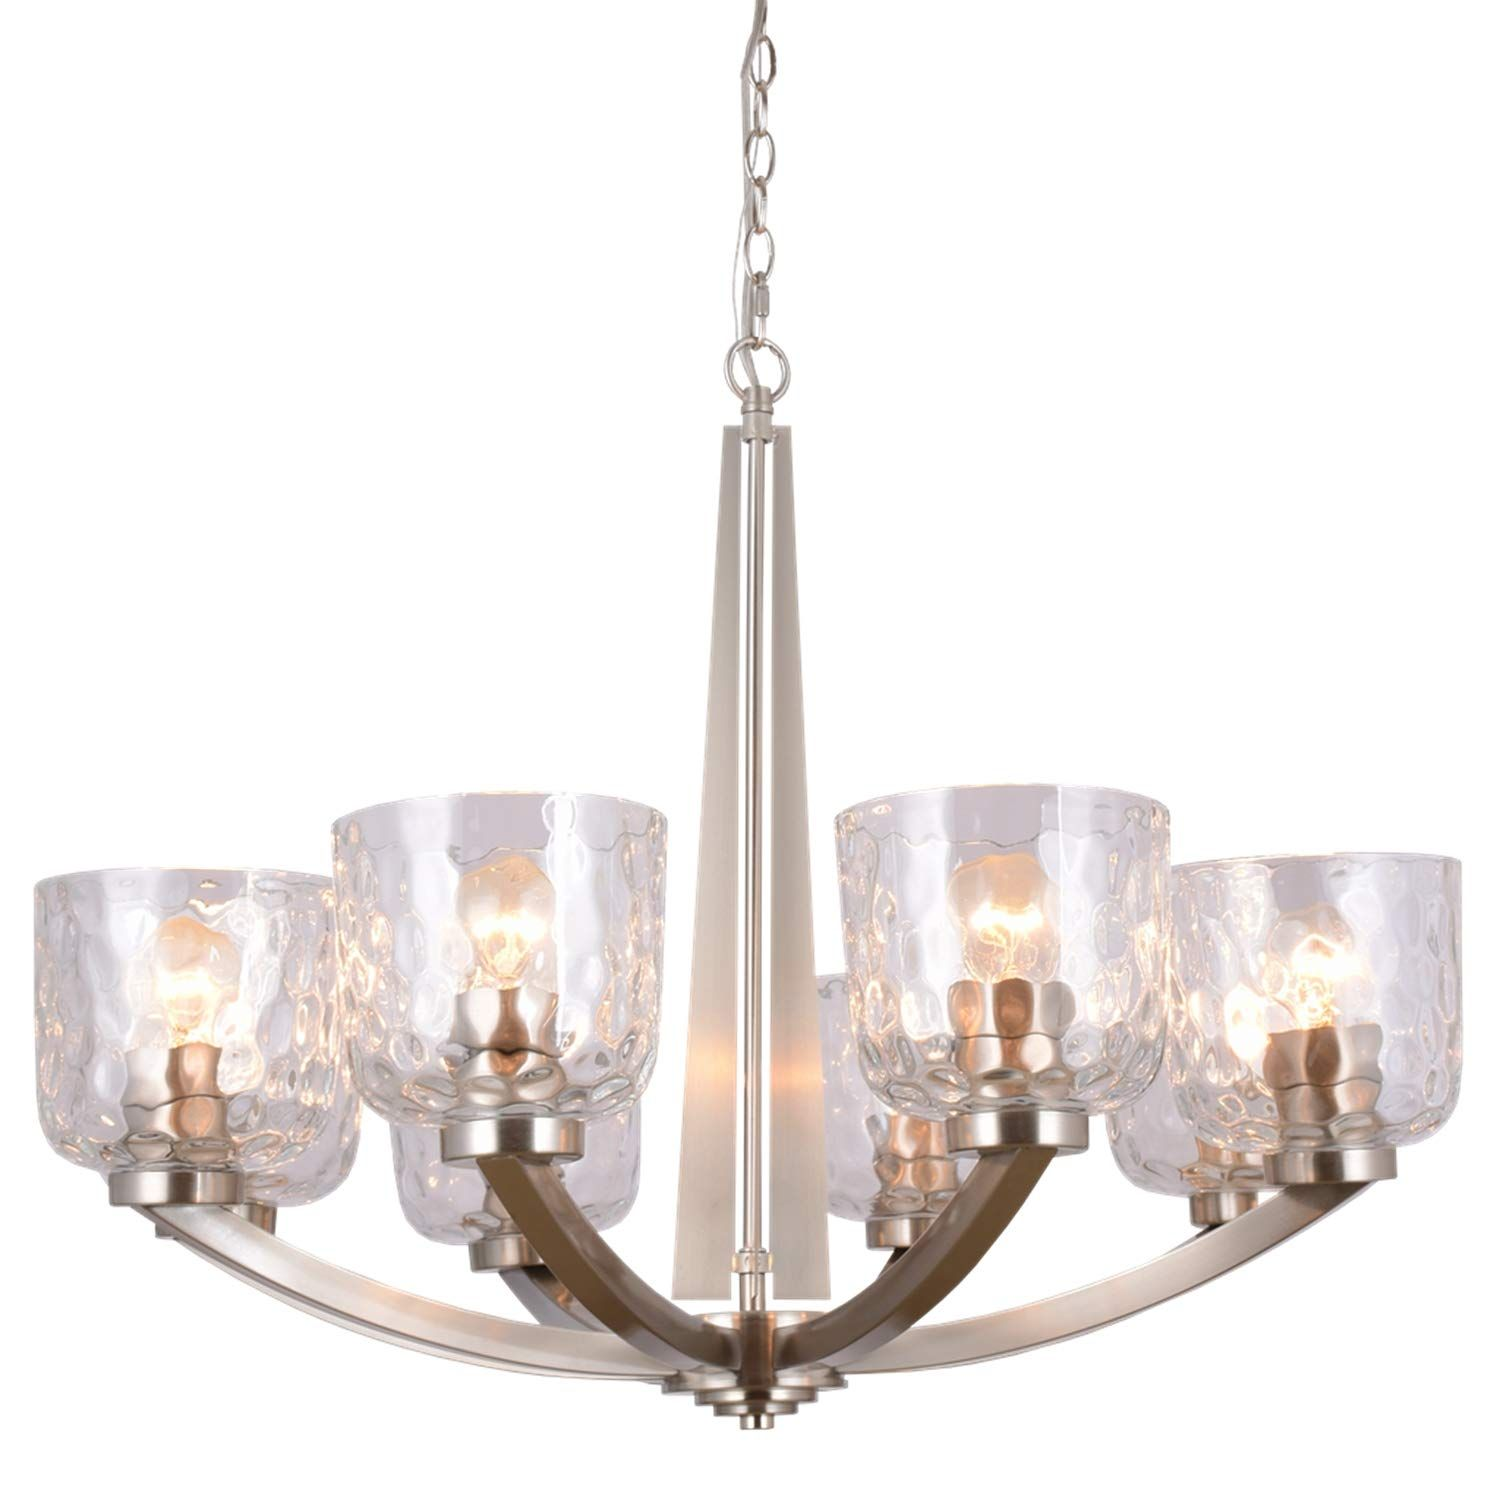 Alice House 29 5 8 Light Large Chandeliers For Dining Room To View Further For This Item Visit Dining Chandelier Dining Room Chandelier Large Chandeliers